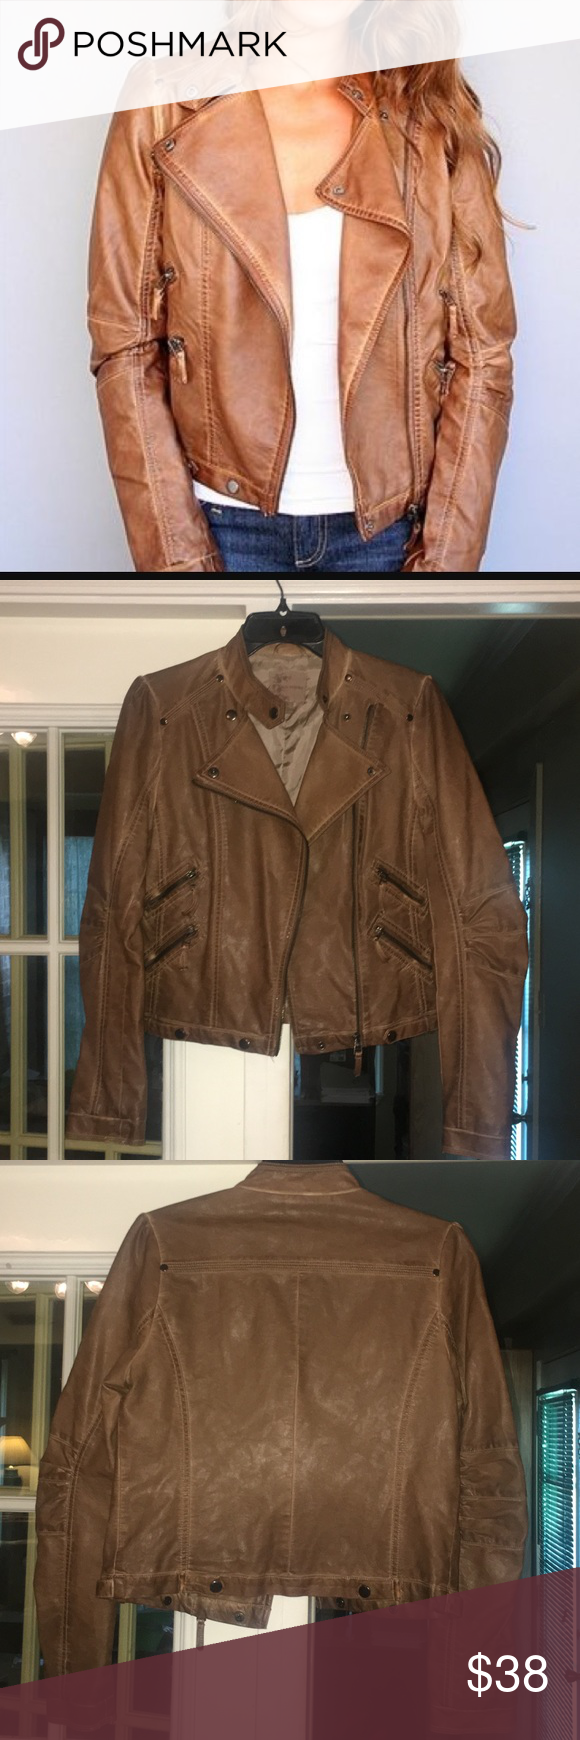 Blu Pepper Tan Faux Leather Jacket Perfect for the Fall